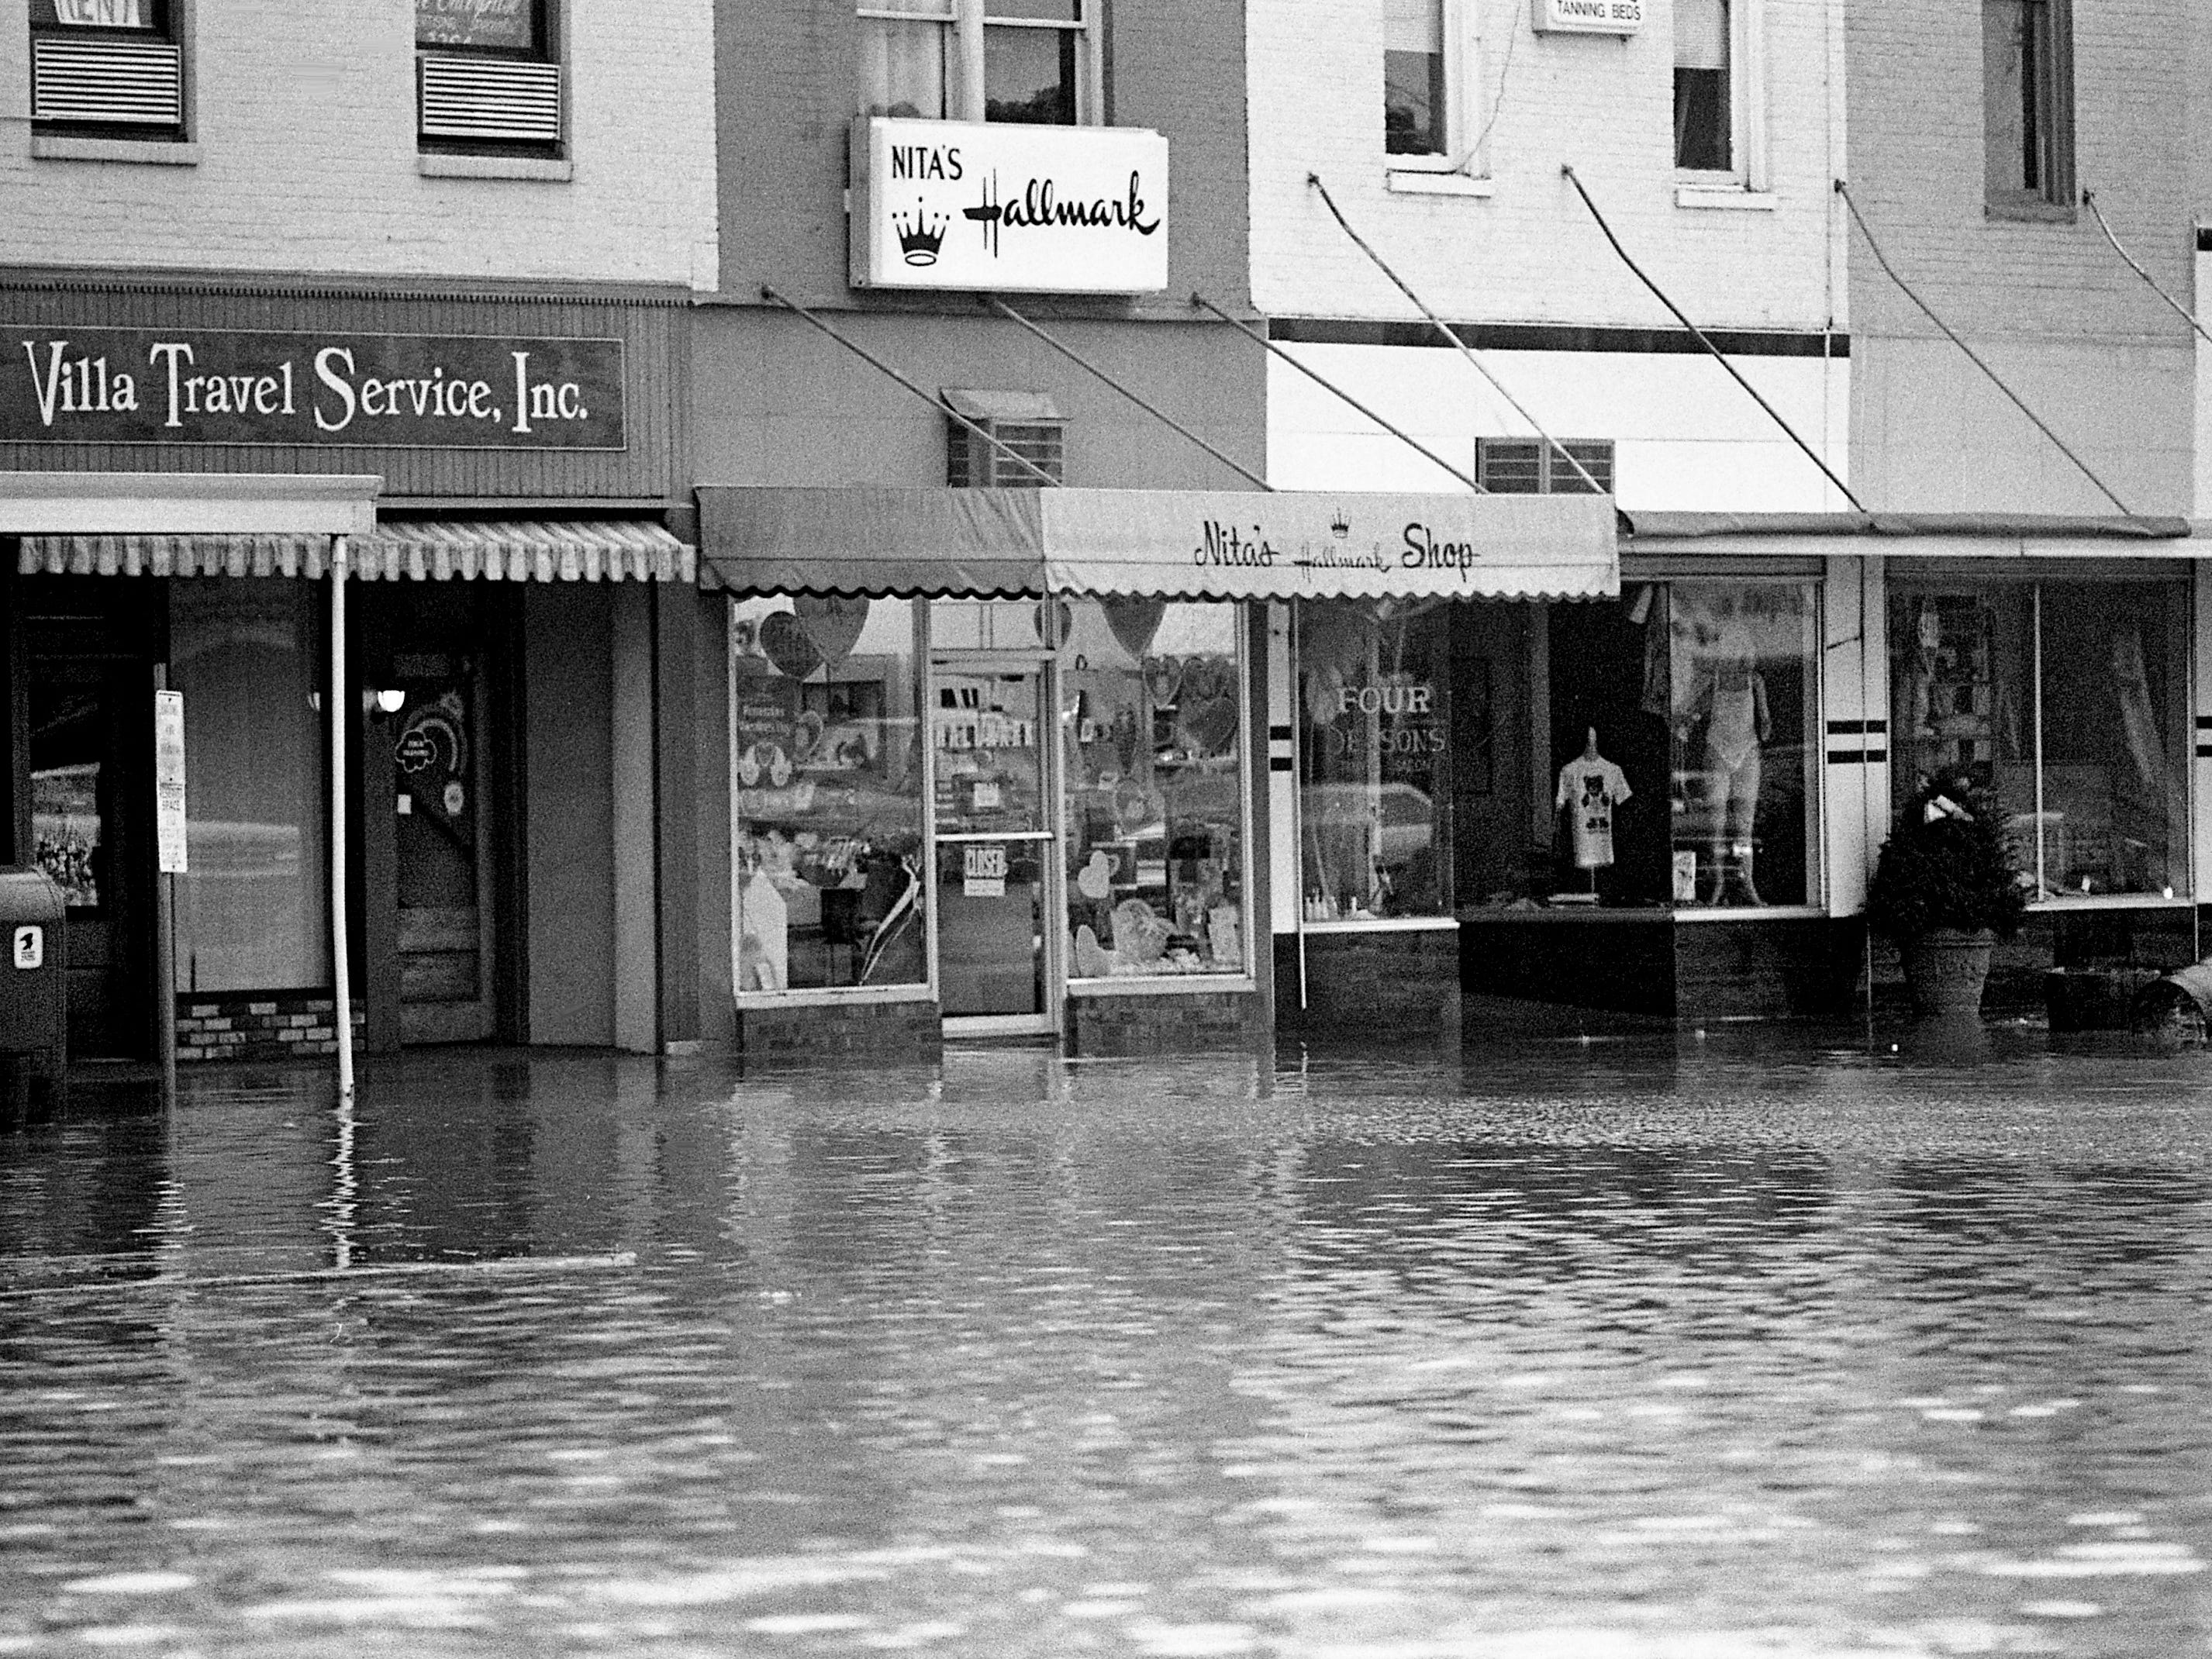 Businesses on the city square in Lebanon are flooded Feb. 14, 1989, after a storm dumped nearly 6 inches of rain on Wilson County.